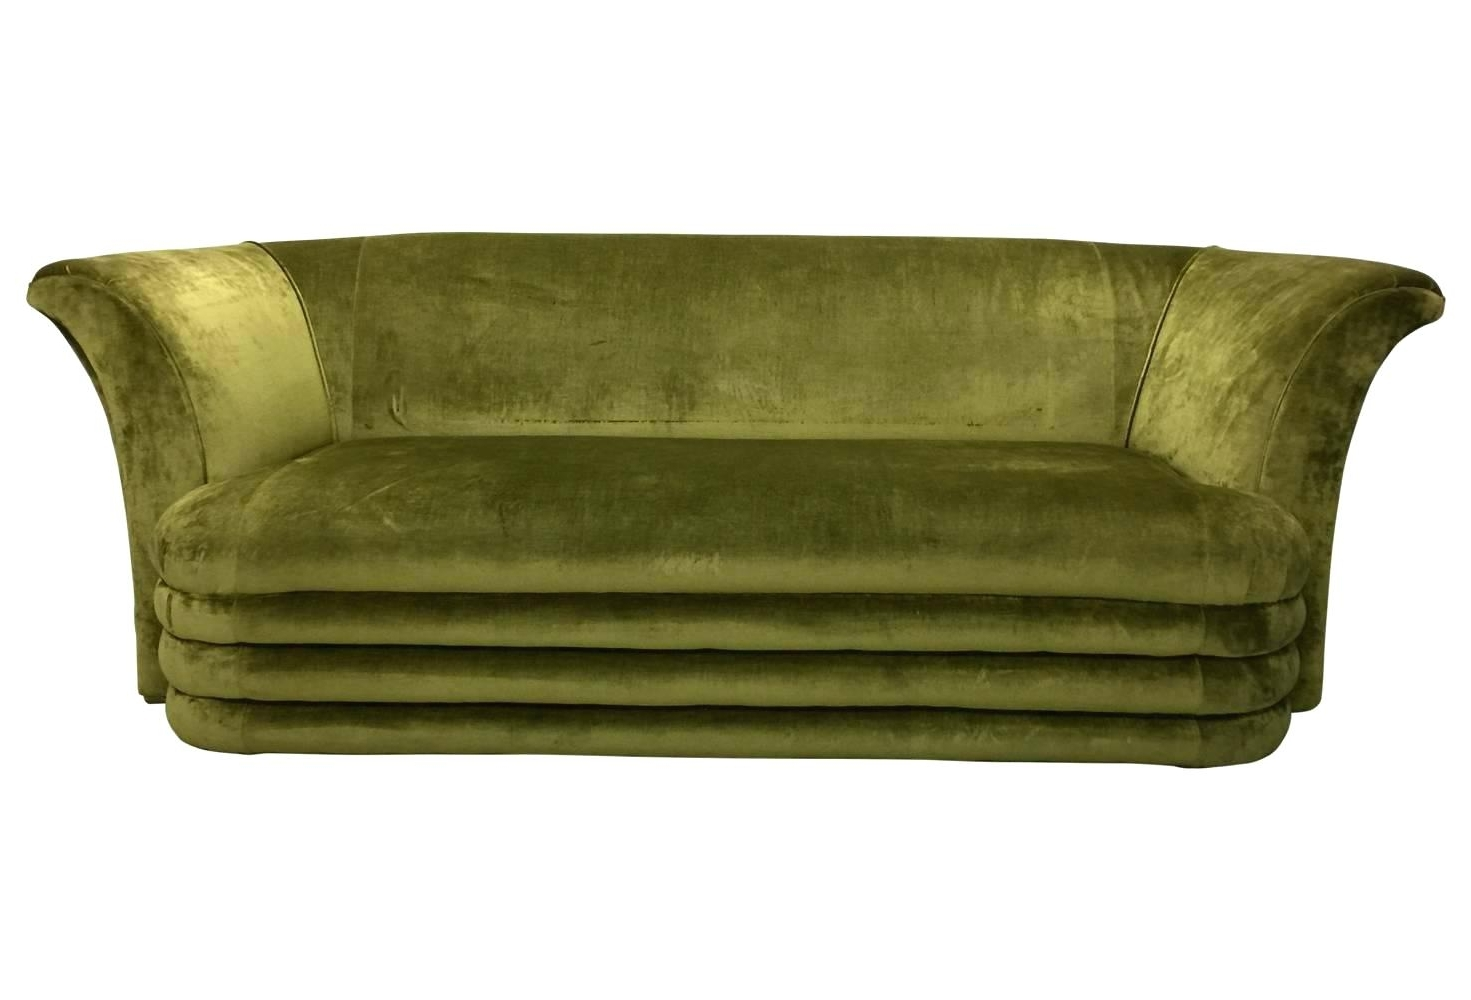 2019 Art Deco Sofas For Modern Art Deco Furniture Mid Century Modern Art Inspired (View 2 of 20)